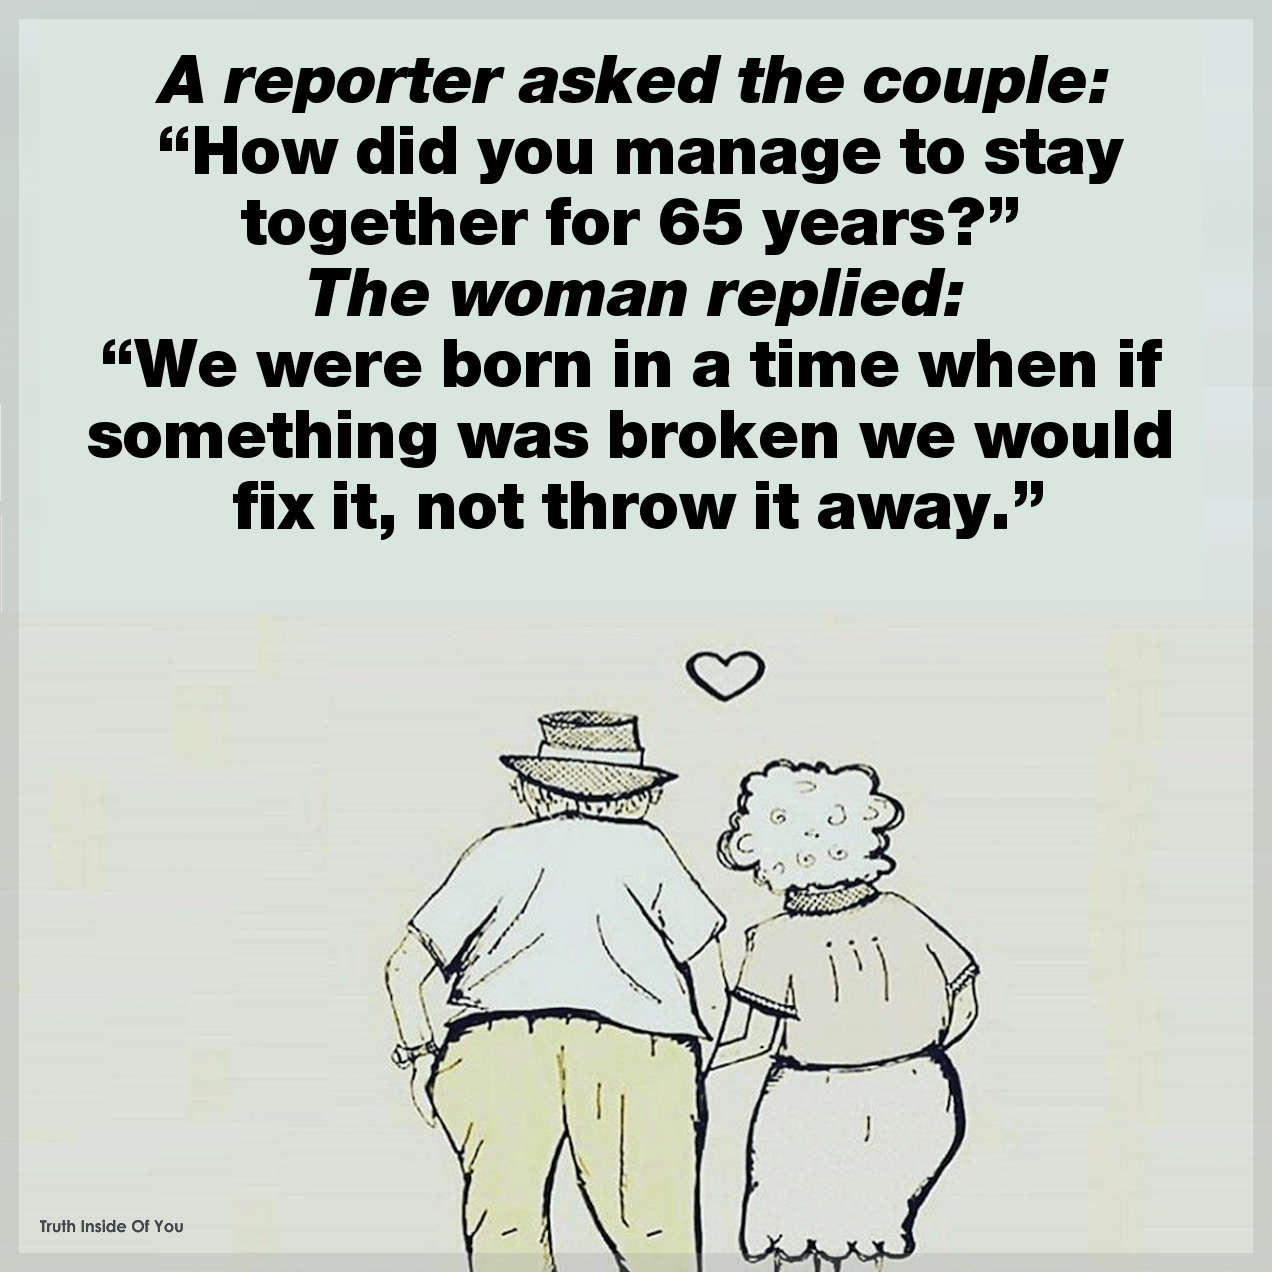 "A reporter asked the couple, ""How did you manage to stay together for 65 years?"" The woman replied, ""We were born in a time when if something was broken we would fix it, not throw it away."""